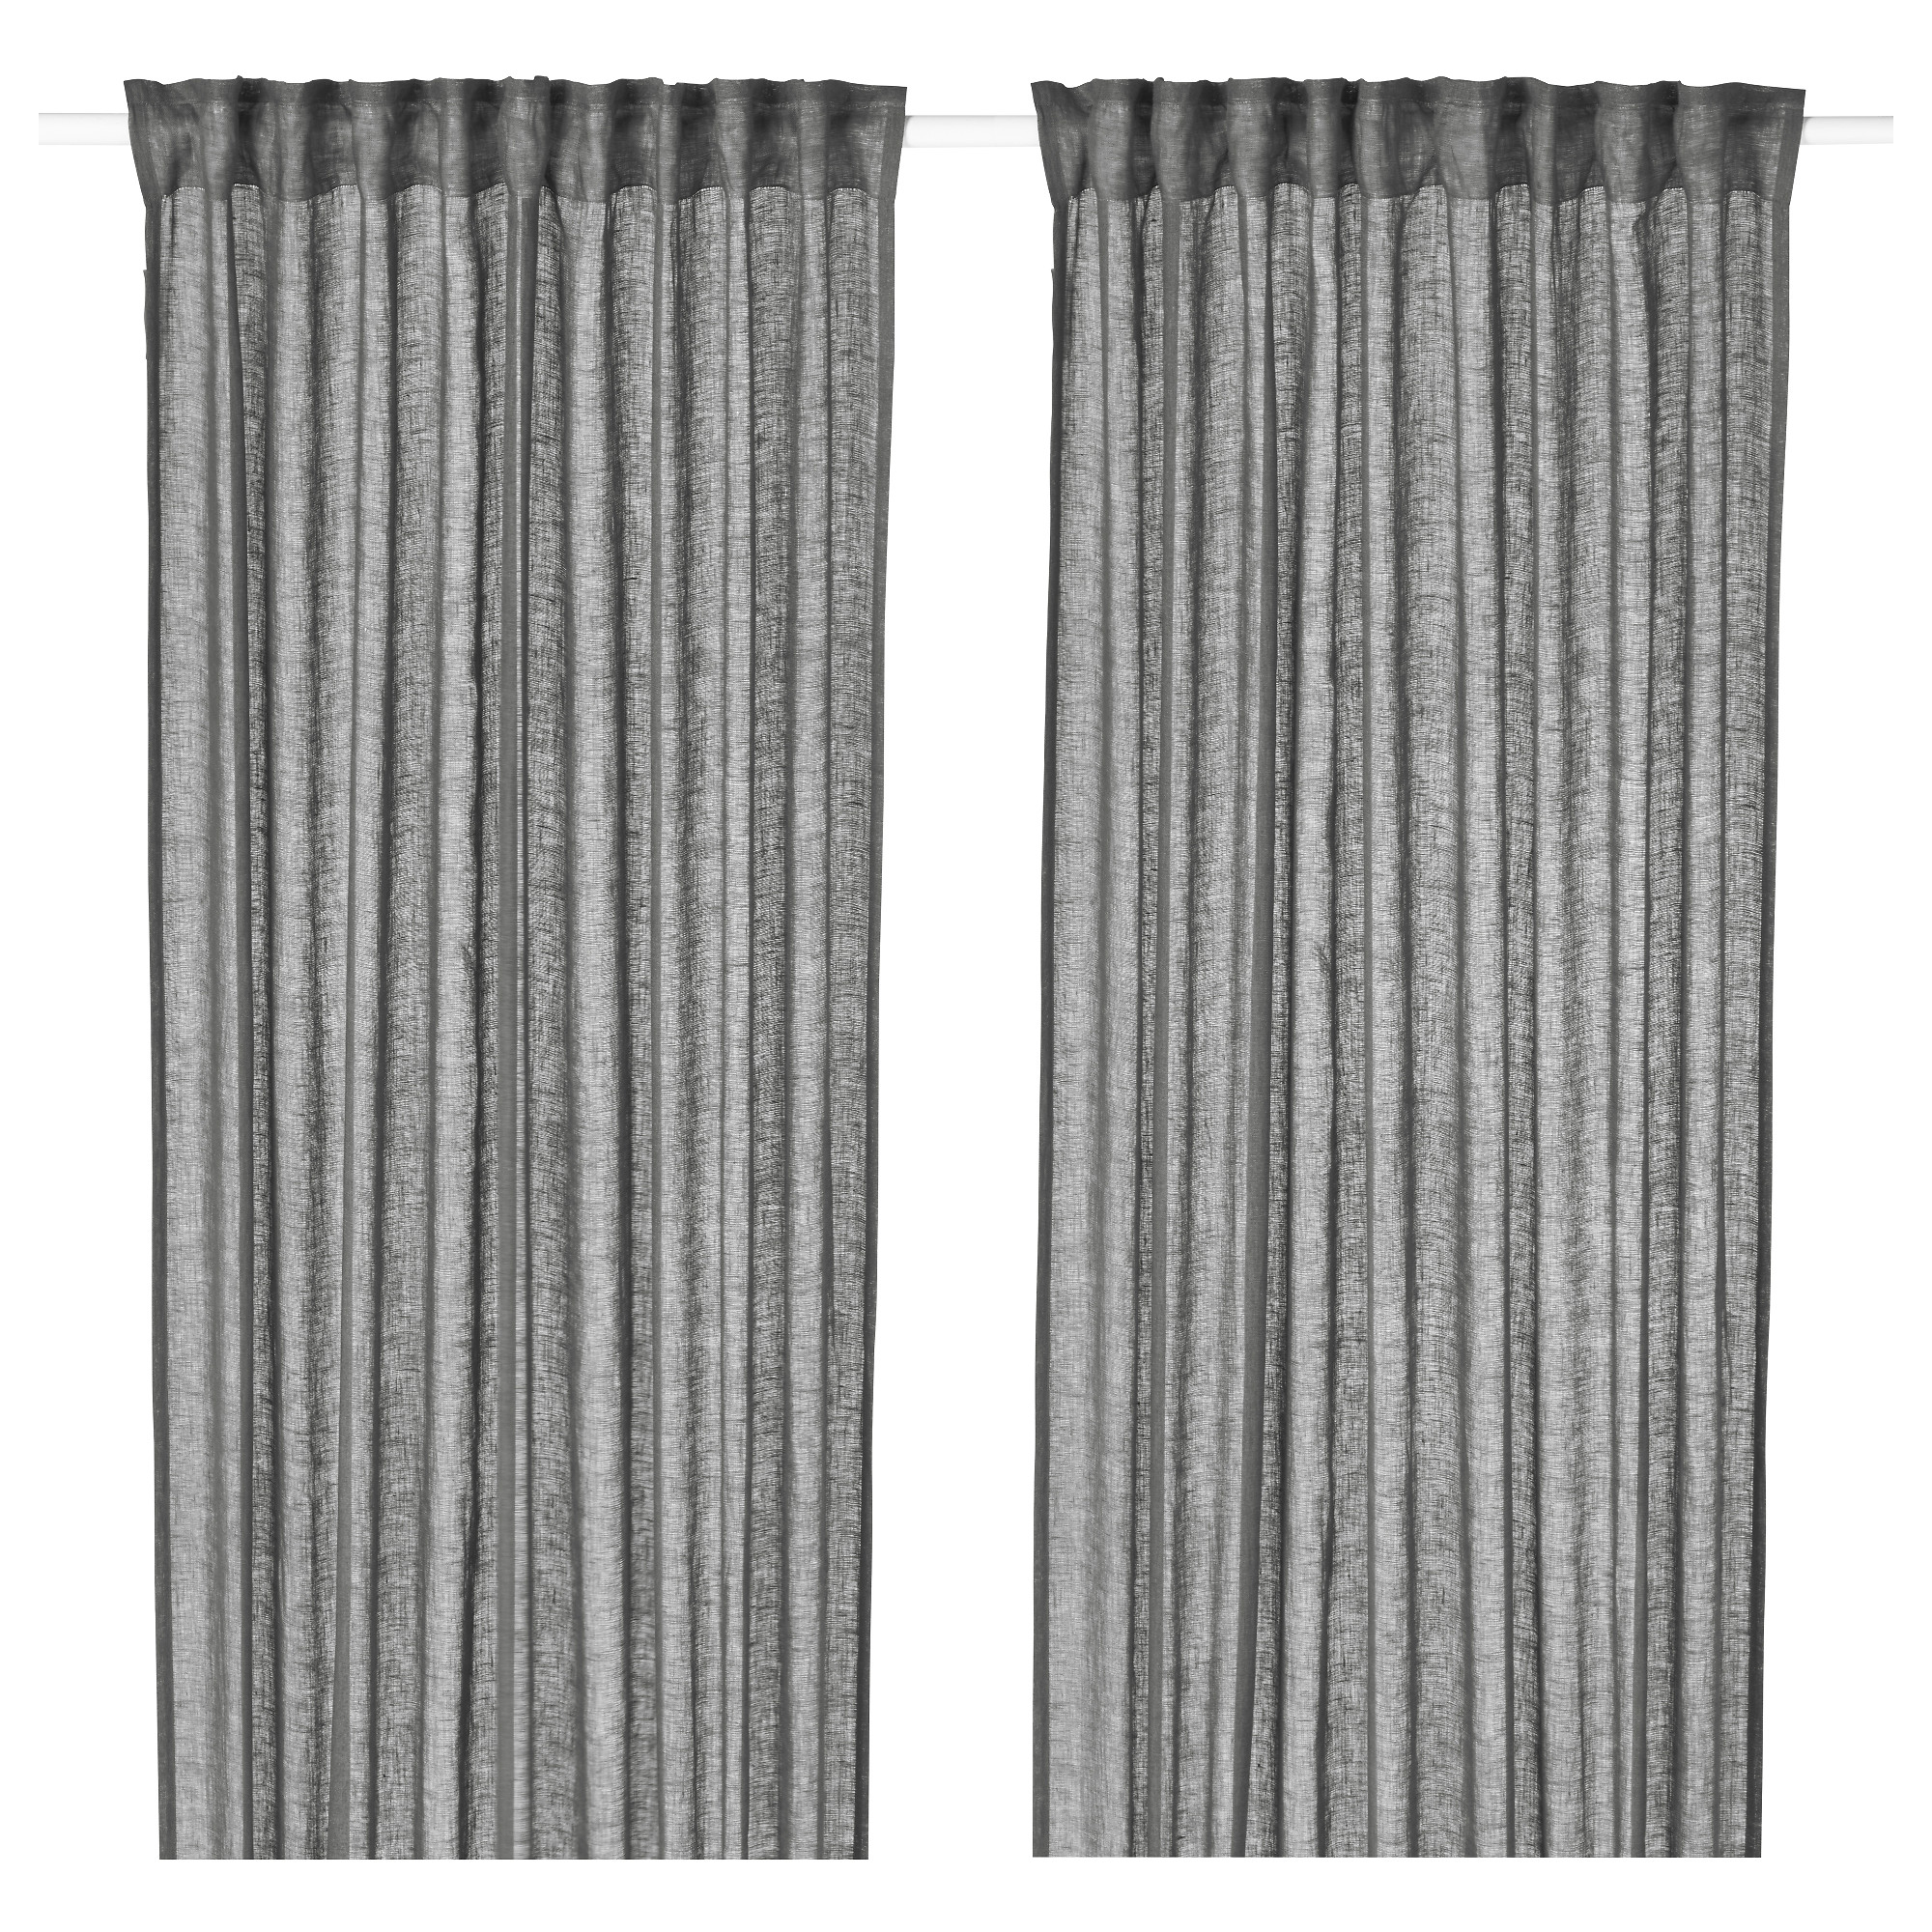 c grey sheer soon eyelet with curtain grommets en shadow back voilage a us curtains oeillets madura linen gray